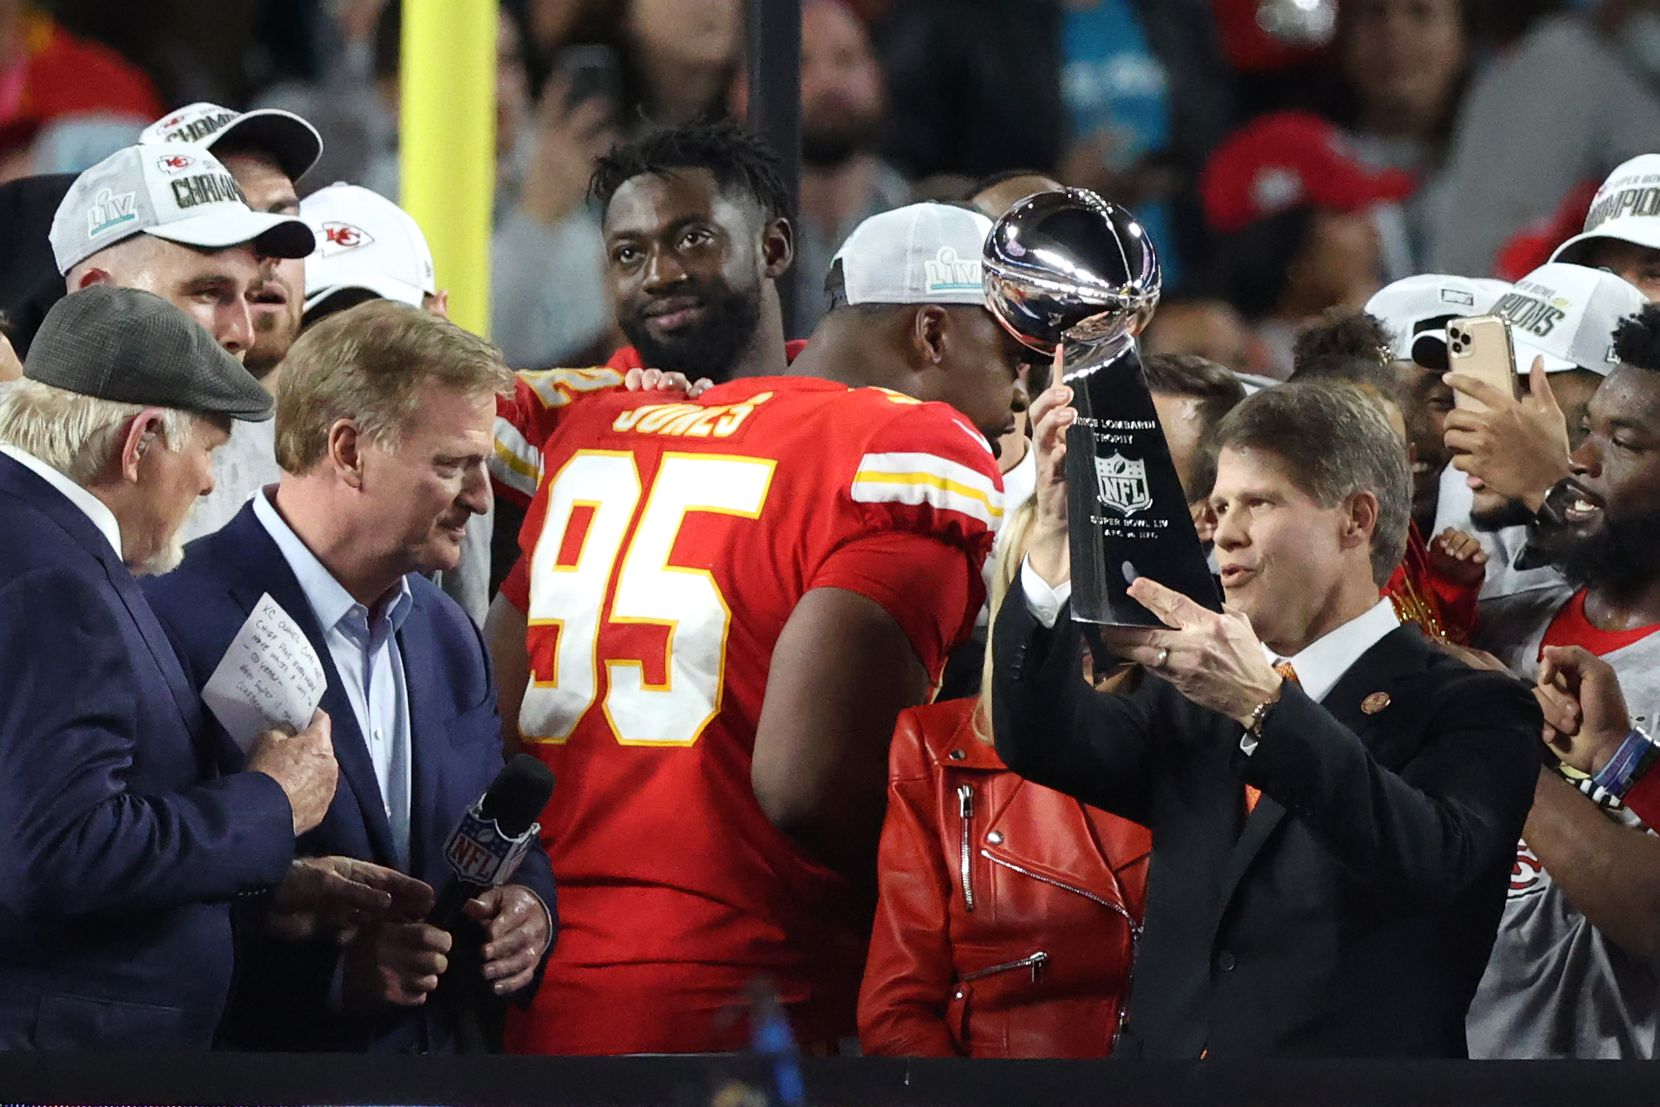 Clark Hunt raises the Super Bowl trophy after his Kansas City Chiefs won the NFL's championship game to start the year.